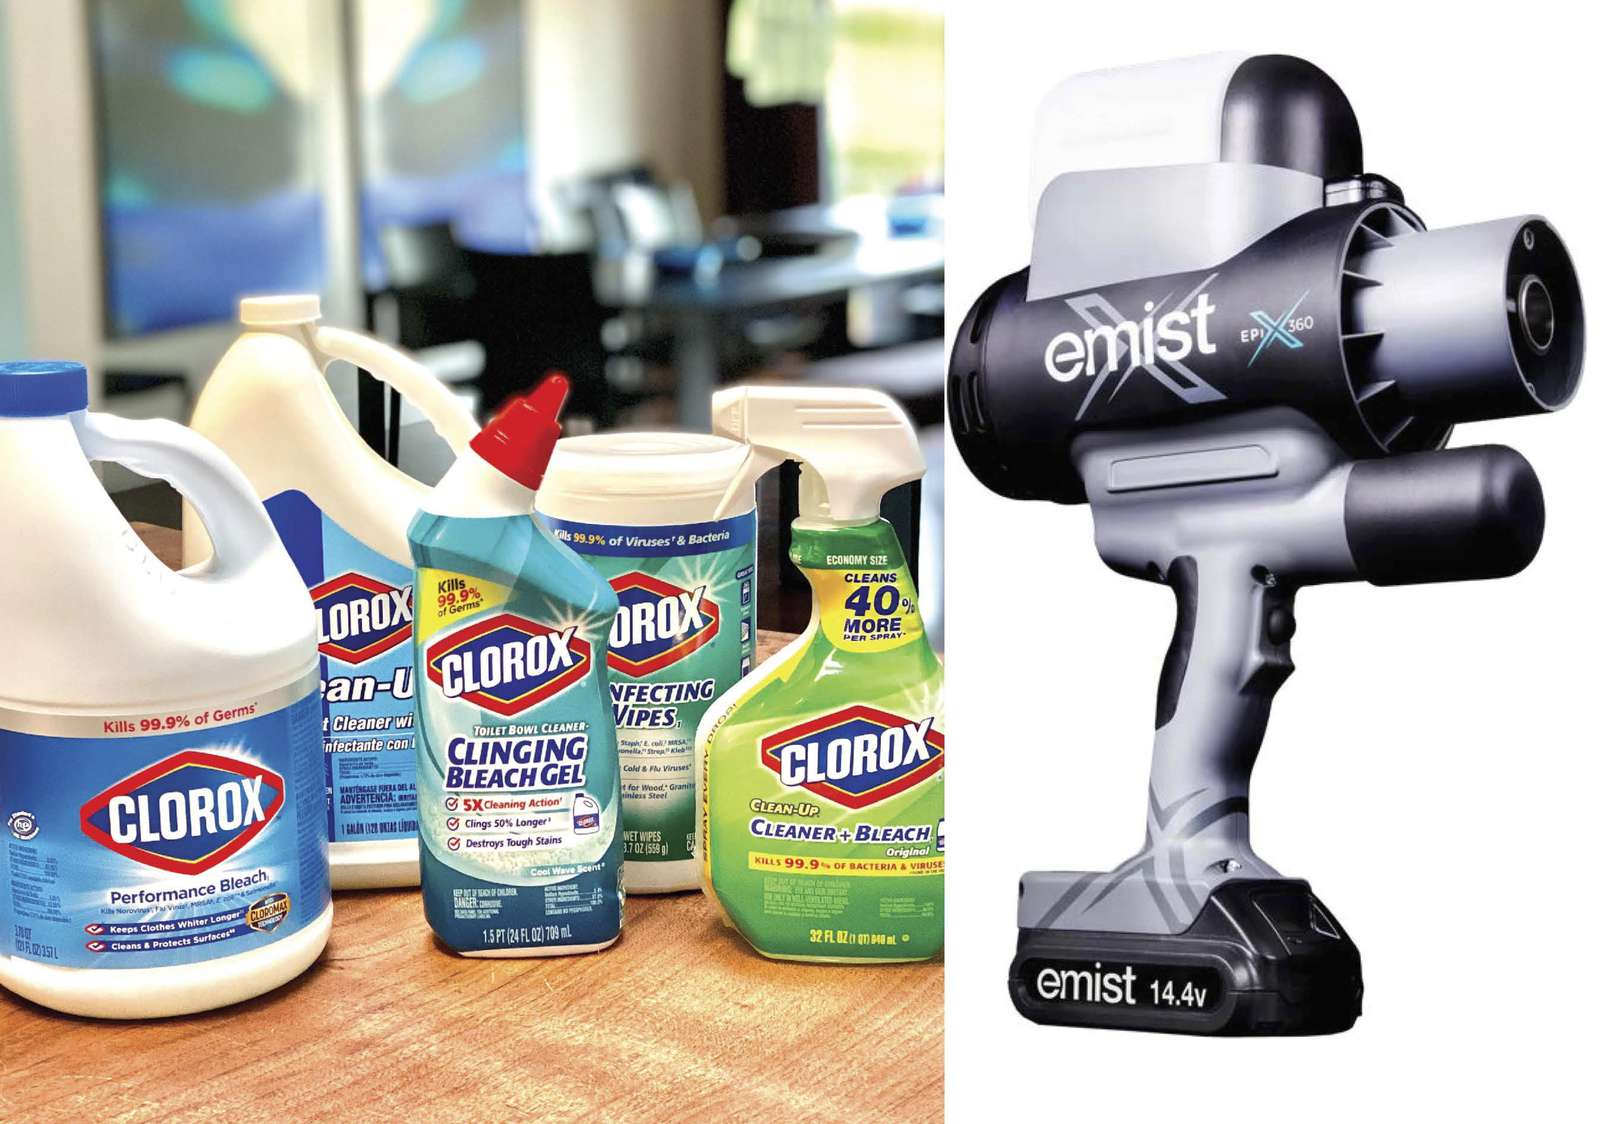 We've always taken a proactive approach by thoroughly cleaning and disinfecting our homes prior to guest arrivals.  We're now adding EMist electrostatic sprayers to apply EPA-approved disinfectants before and after our cleaners prepare houses for arrival